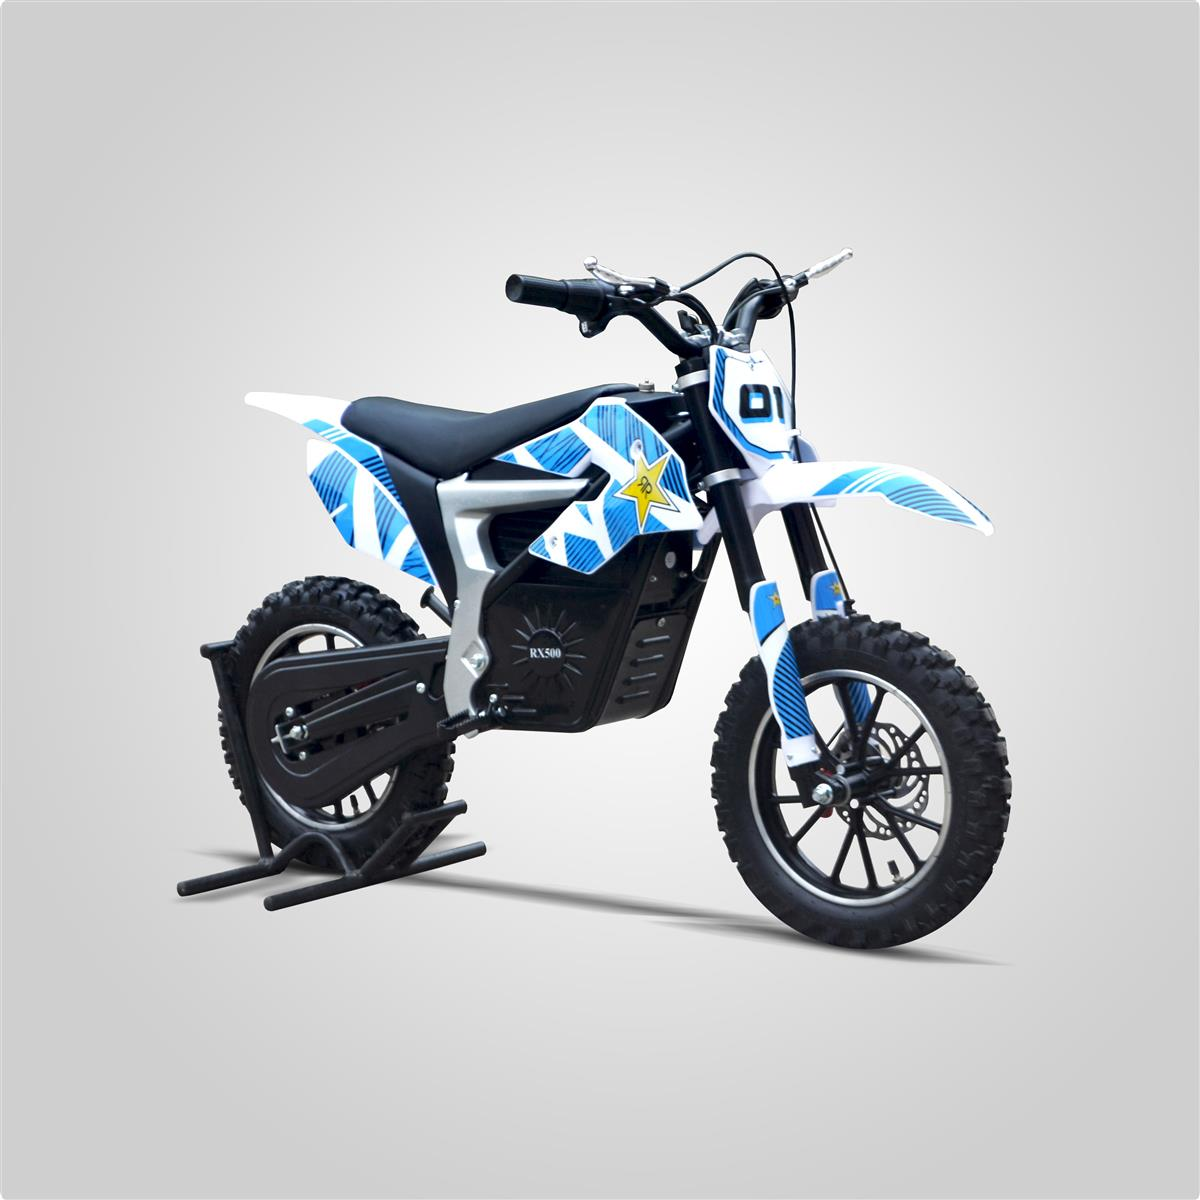 pocket cross rx 500w bleu small mx smallmx dirt bike pit bike quads minimoto. Black Bedroom Furniture Sets. Home Design Ideas